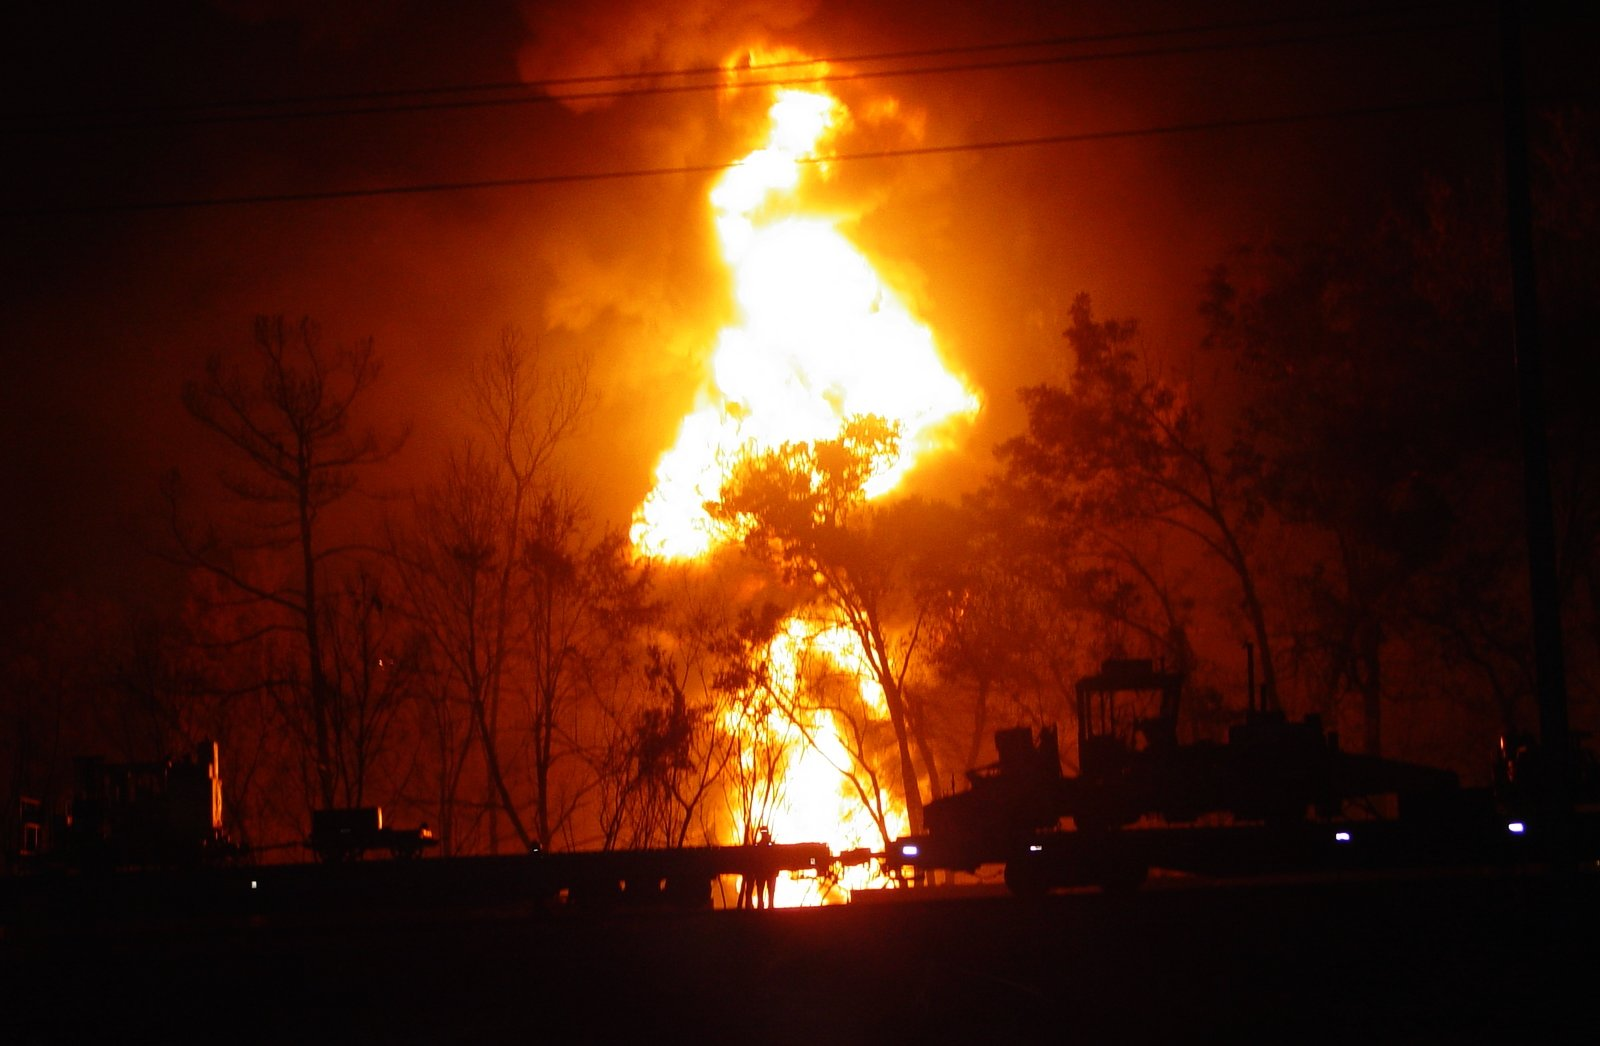 Large fire erupts throughout the night, as a result from the train derailment.